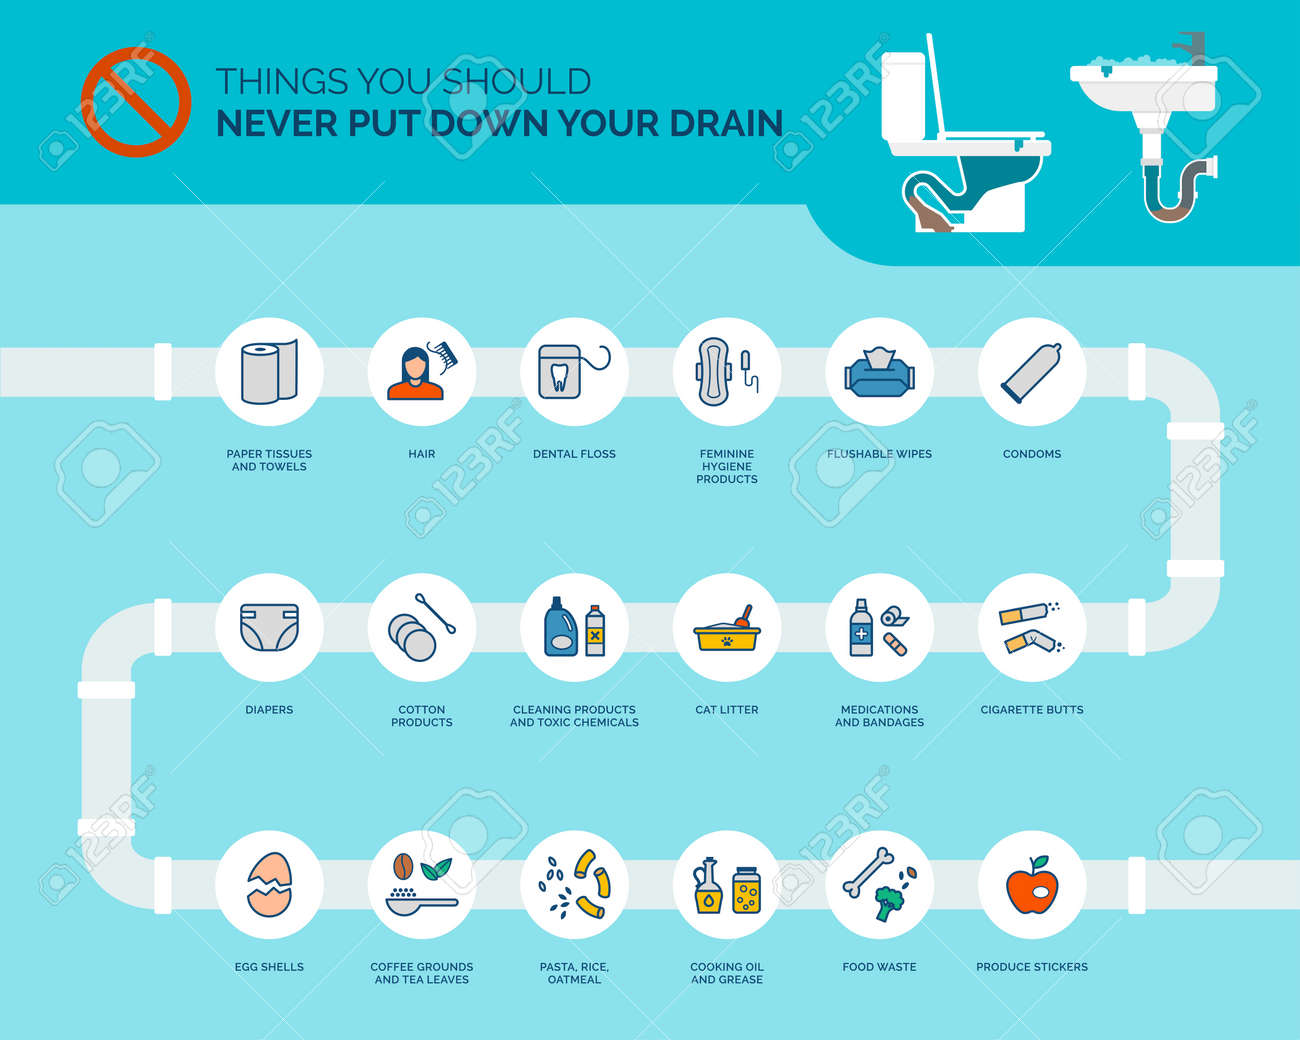 Things you should never put down your drain infographic, how to prevent clogs in your drain - 169454610